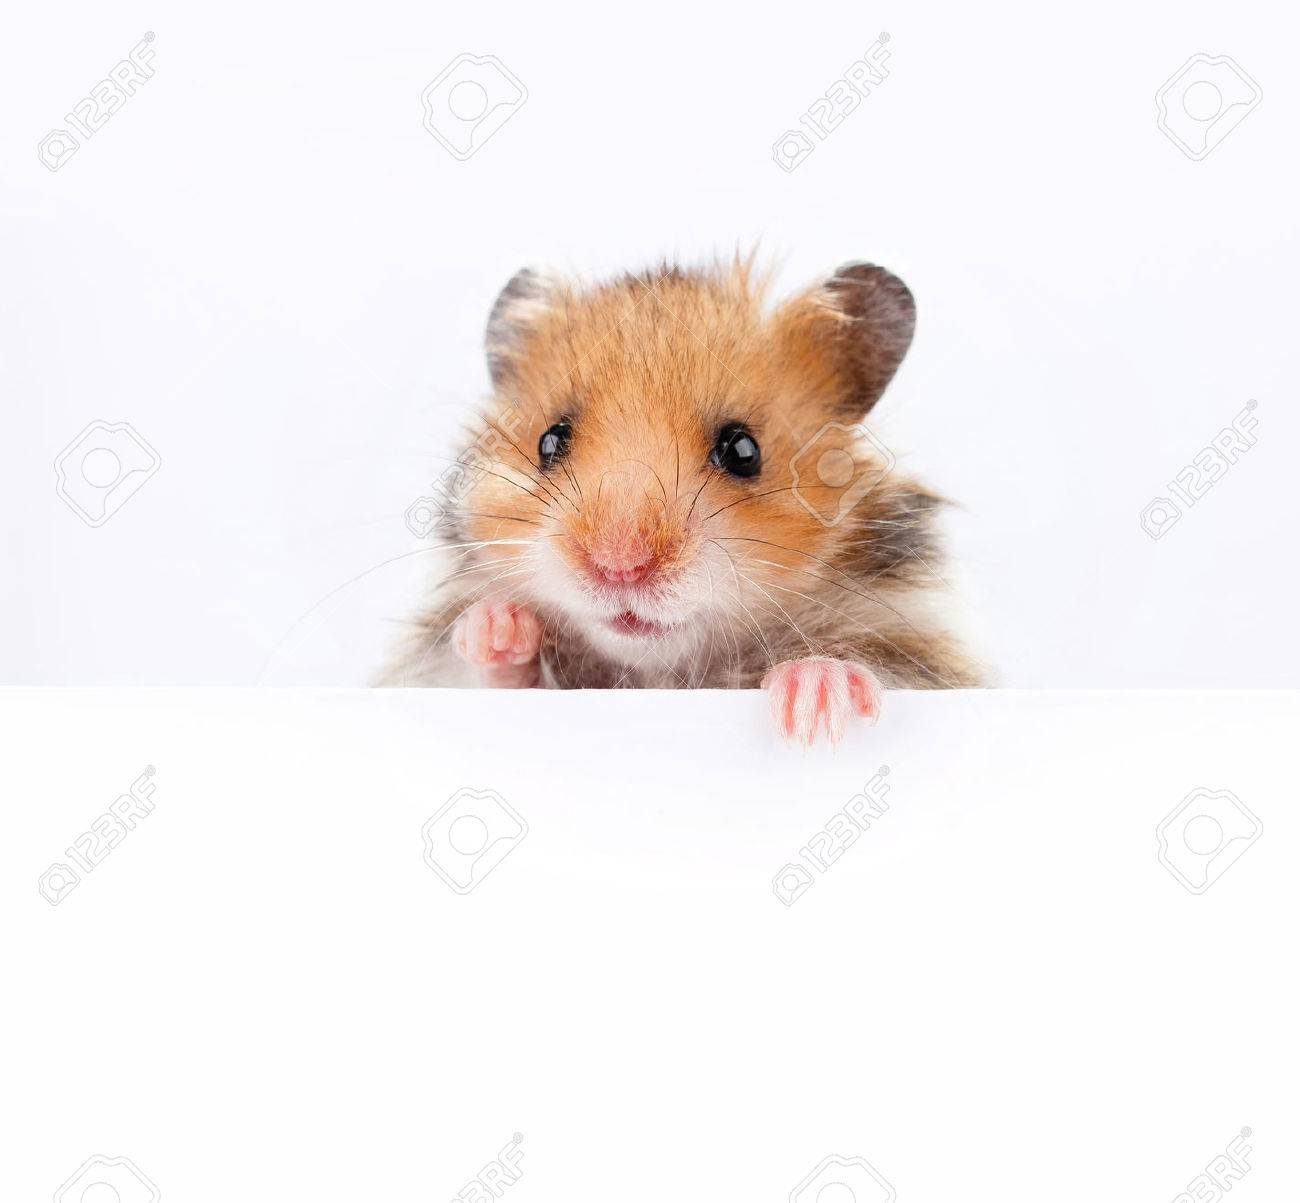 Little hamster hanging its paws over a white banner - 60826380